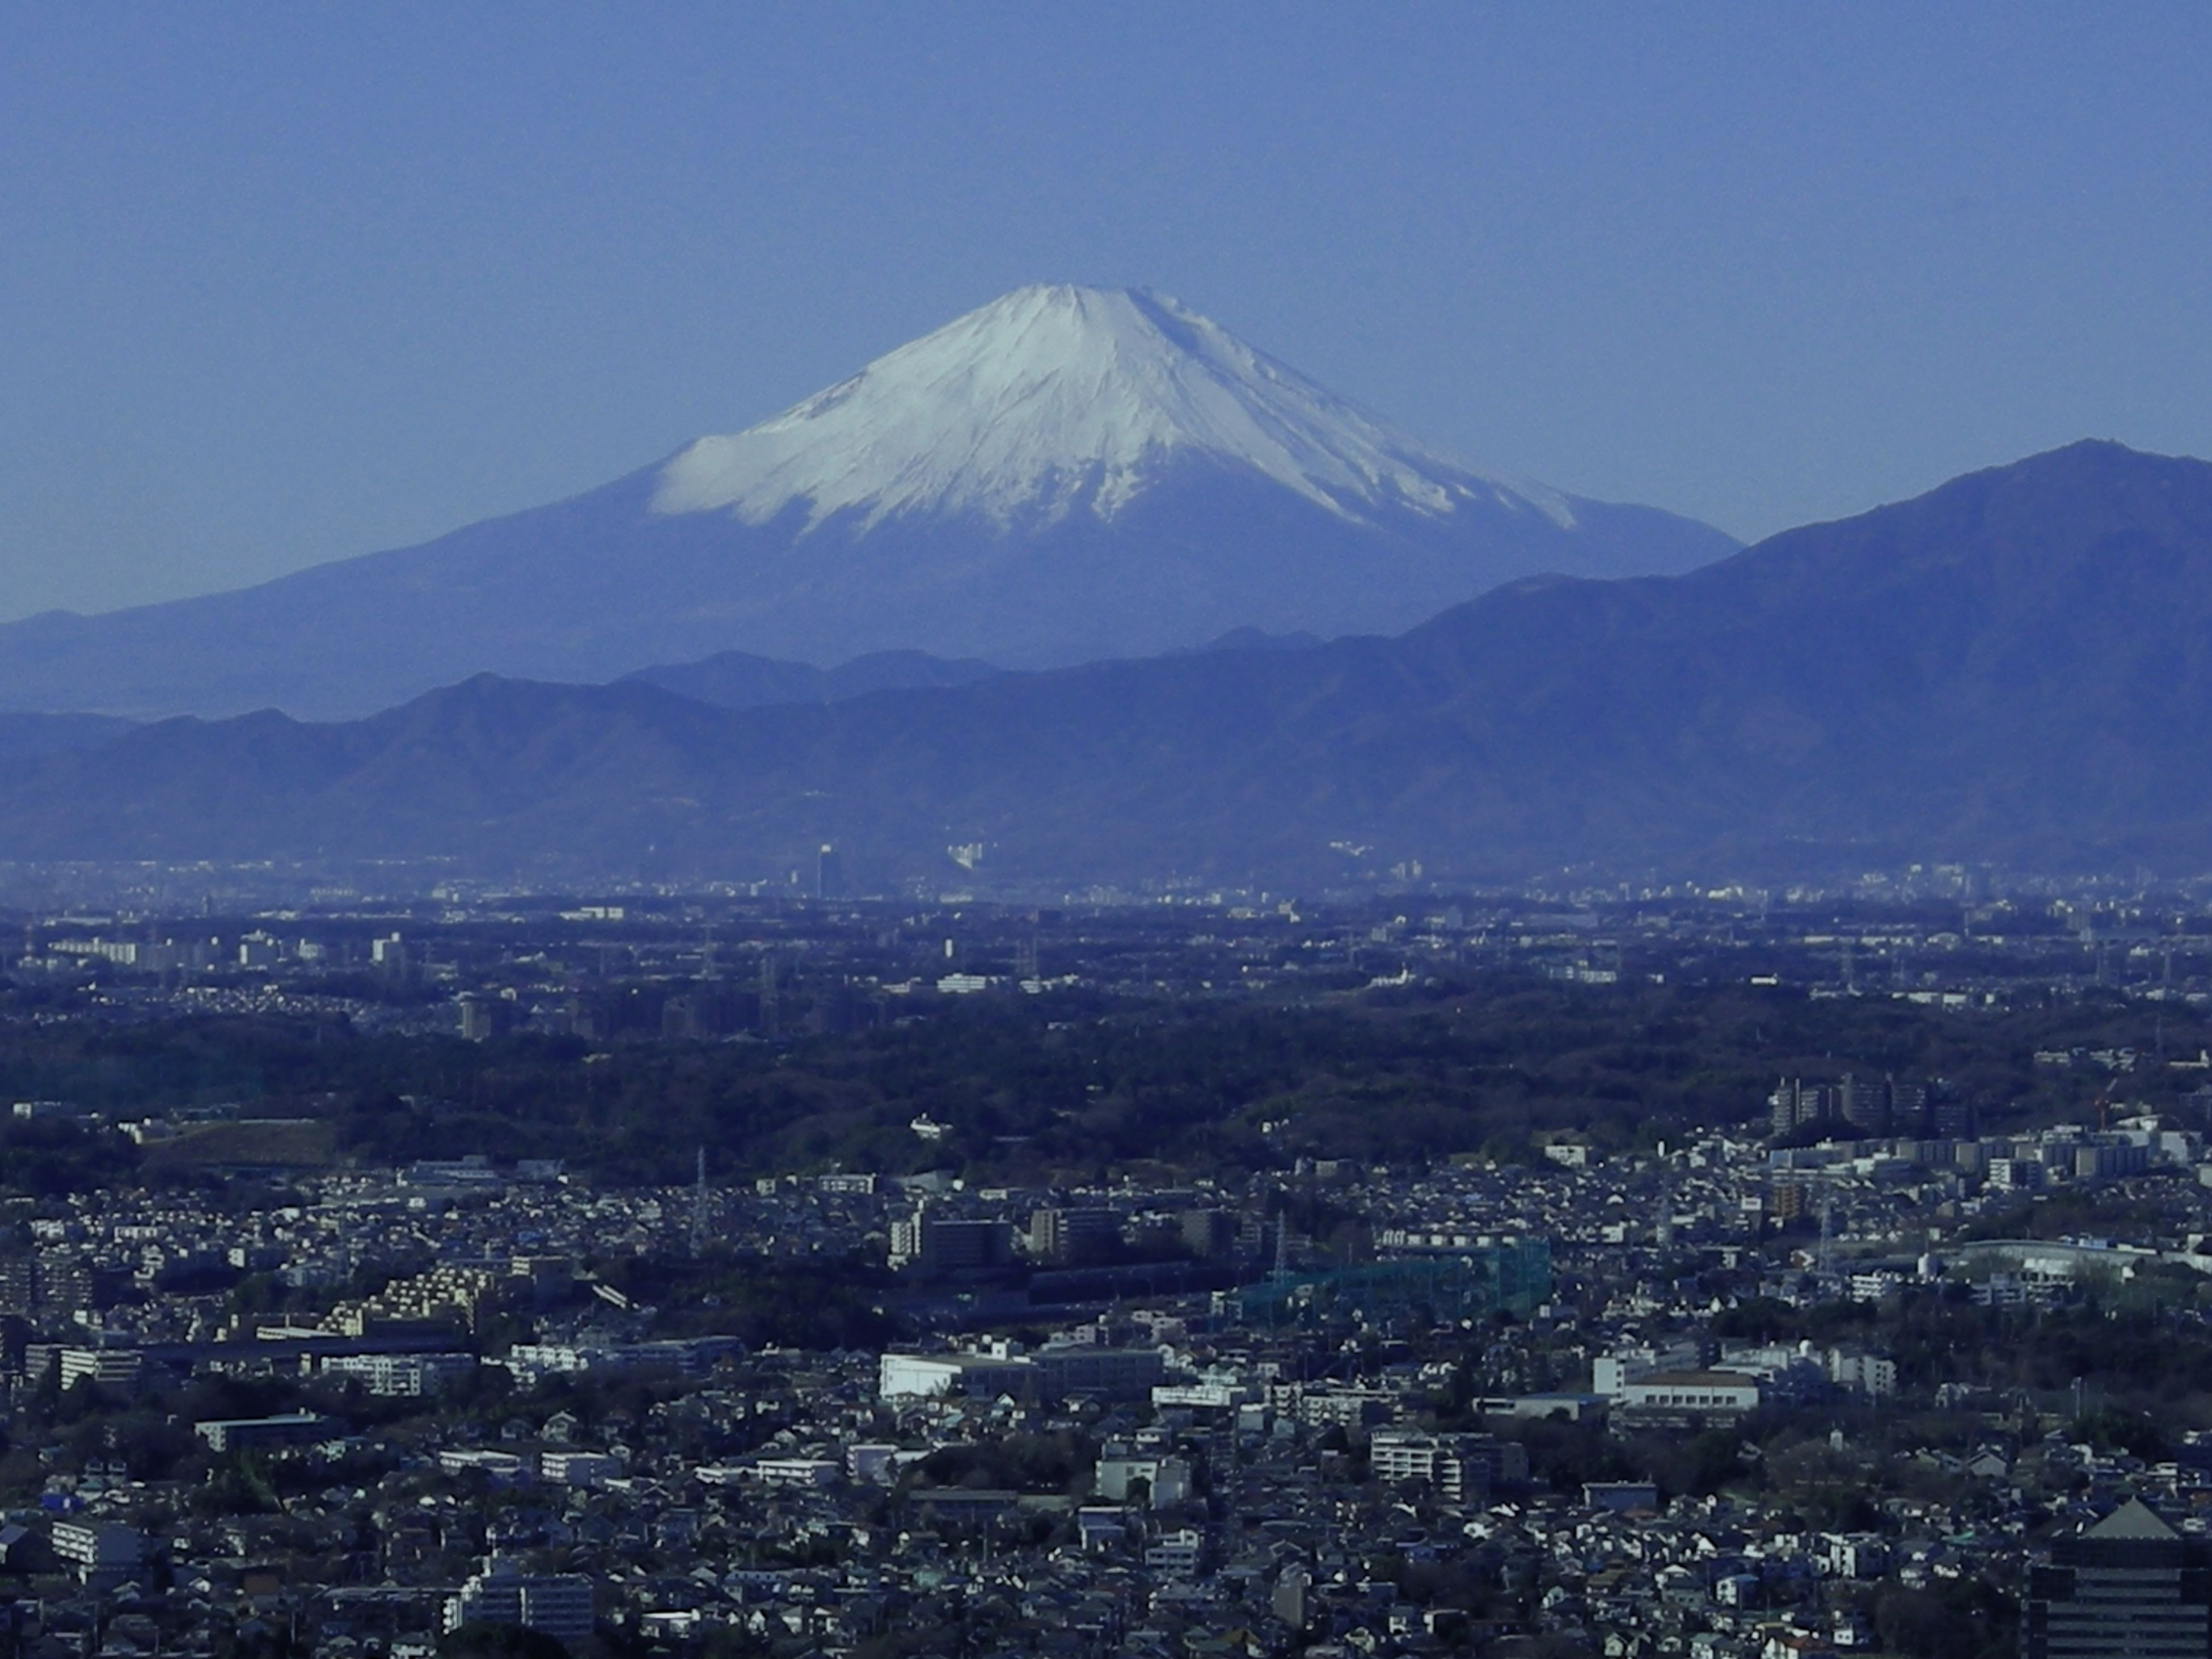 Architecture Beauty In Nature Blue Building Exterior Built Structure City Cityscape Clear Sky Day Fuji-yama Landscape Mountain Mountain Peak Nature No People Outdoors Scenics Sky Travel Destinations Volcano